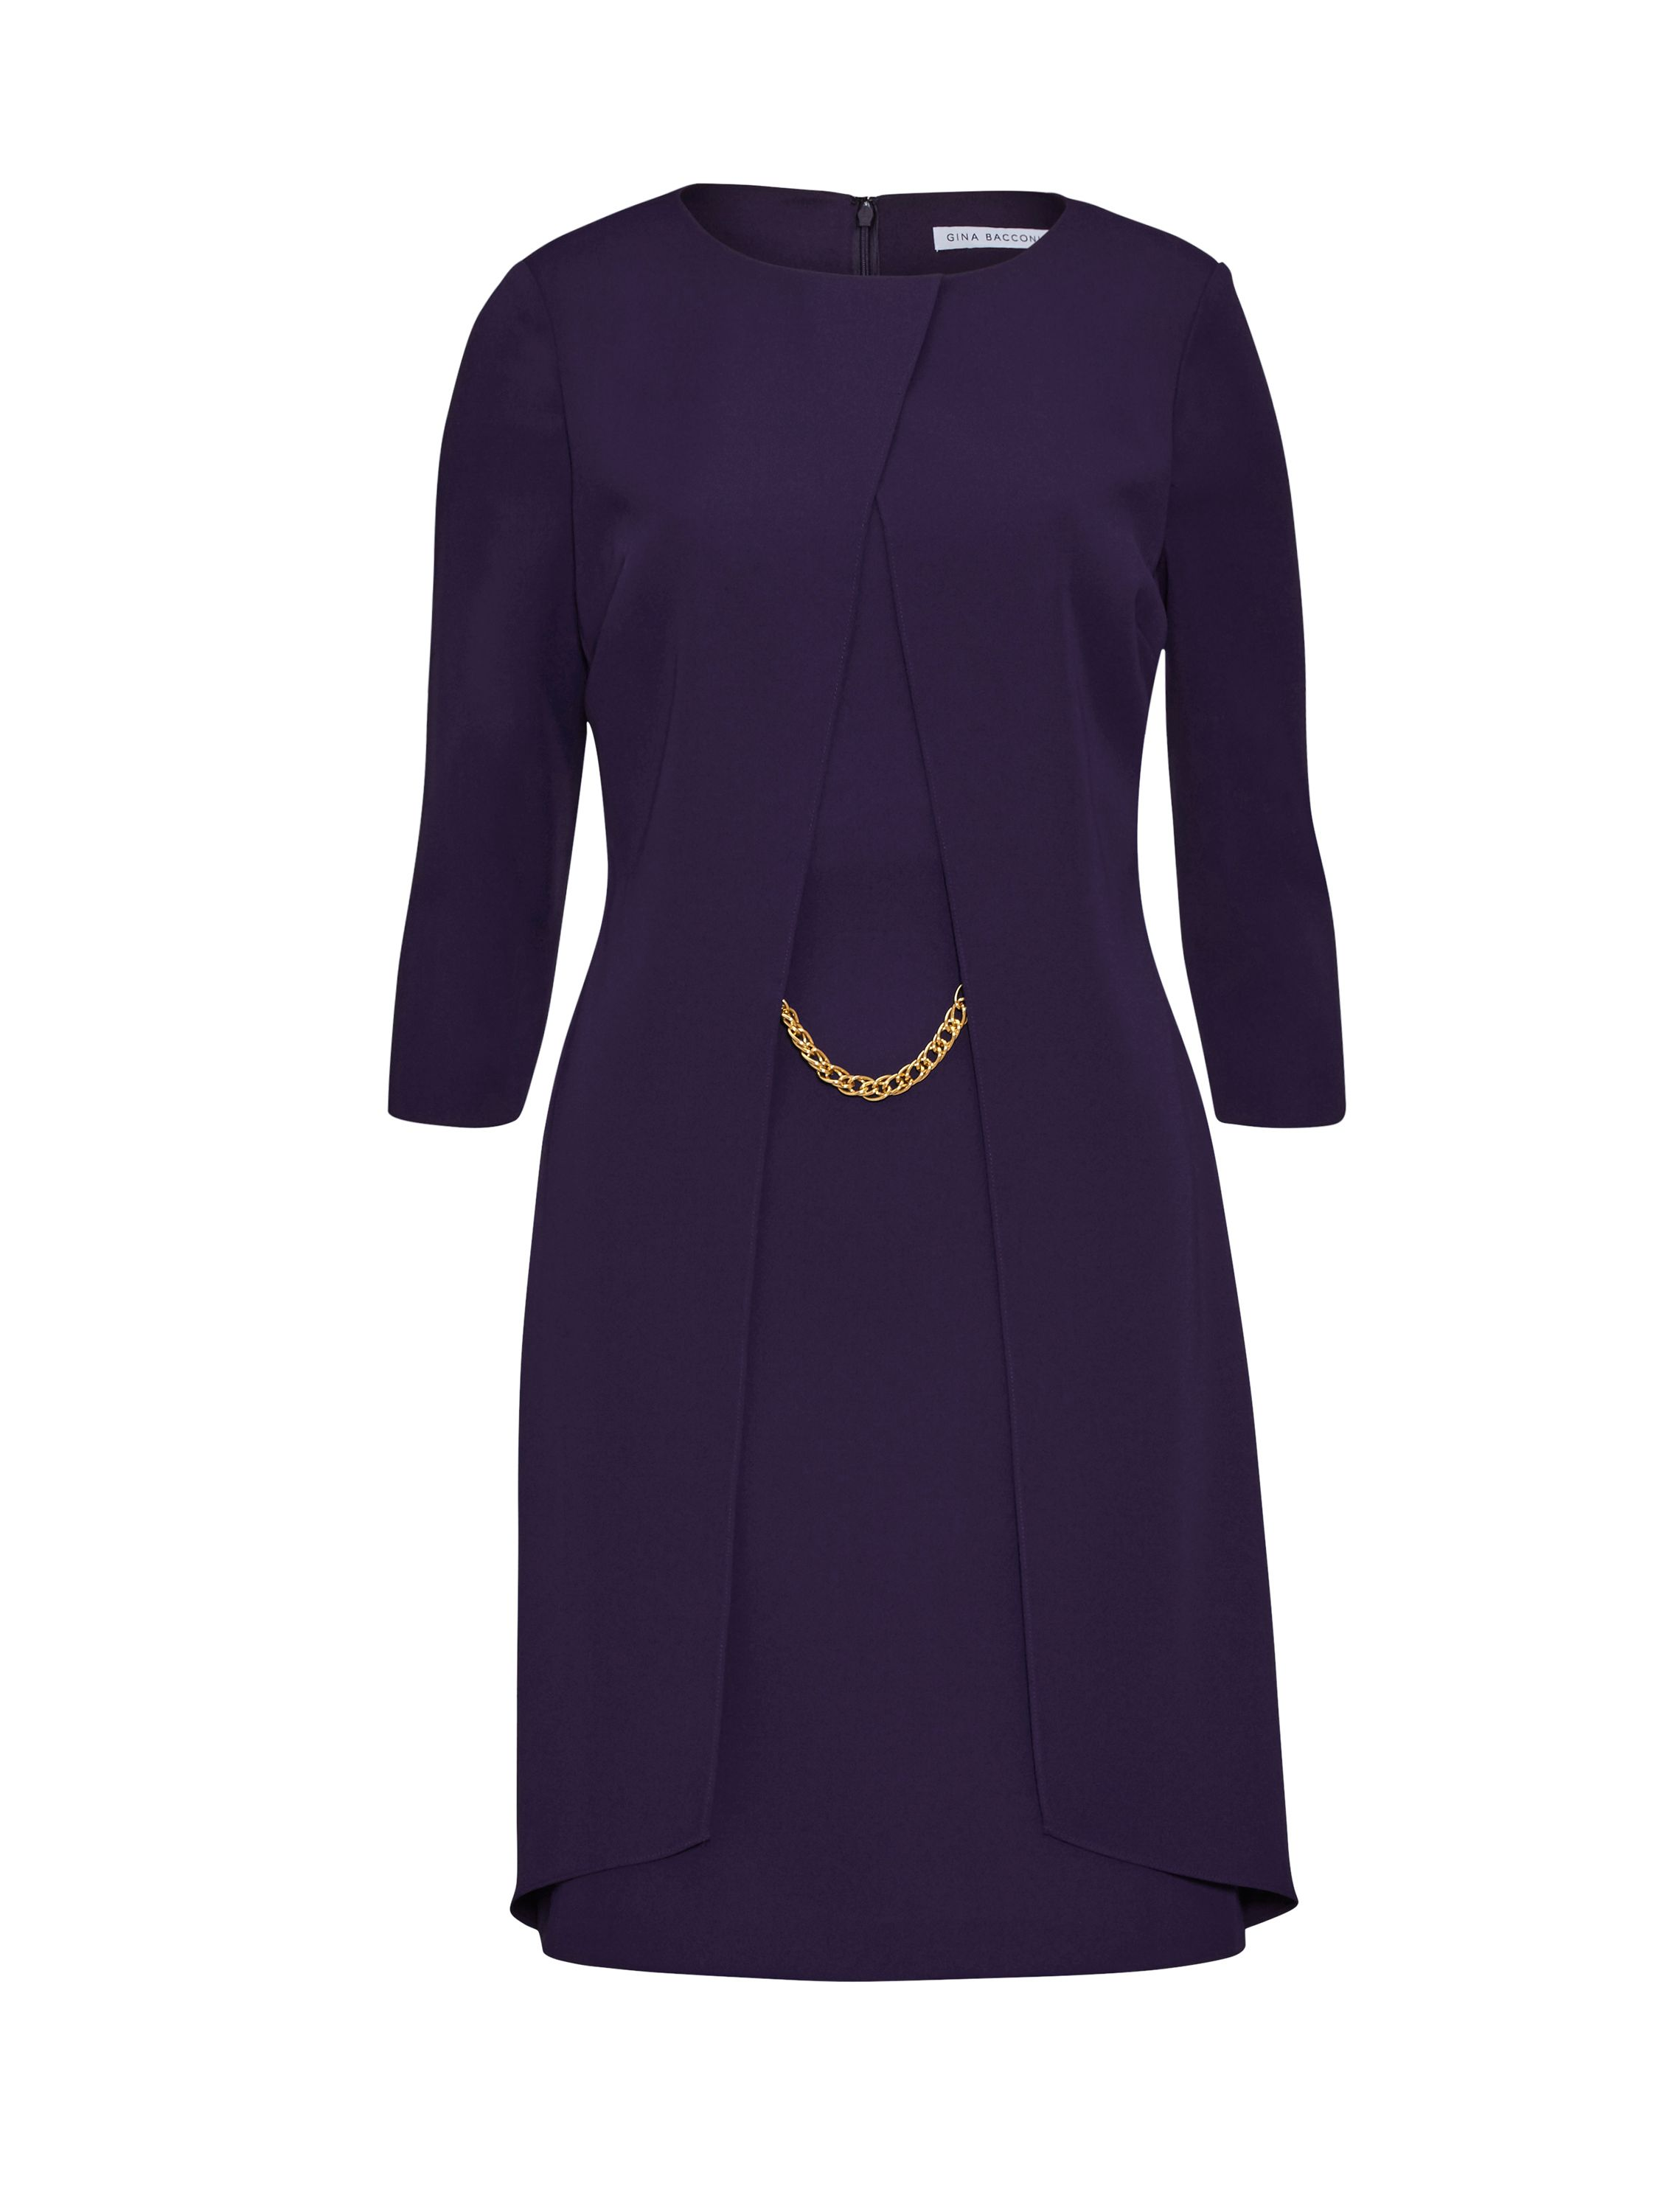 Gina Bacconi Layered Moss Crepe Dress With Chain Trim, Purple